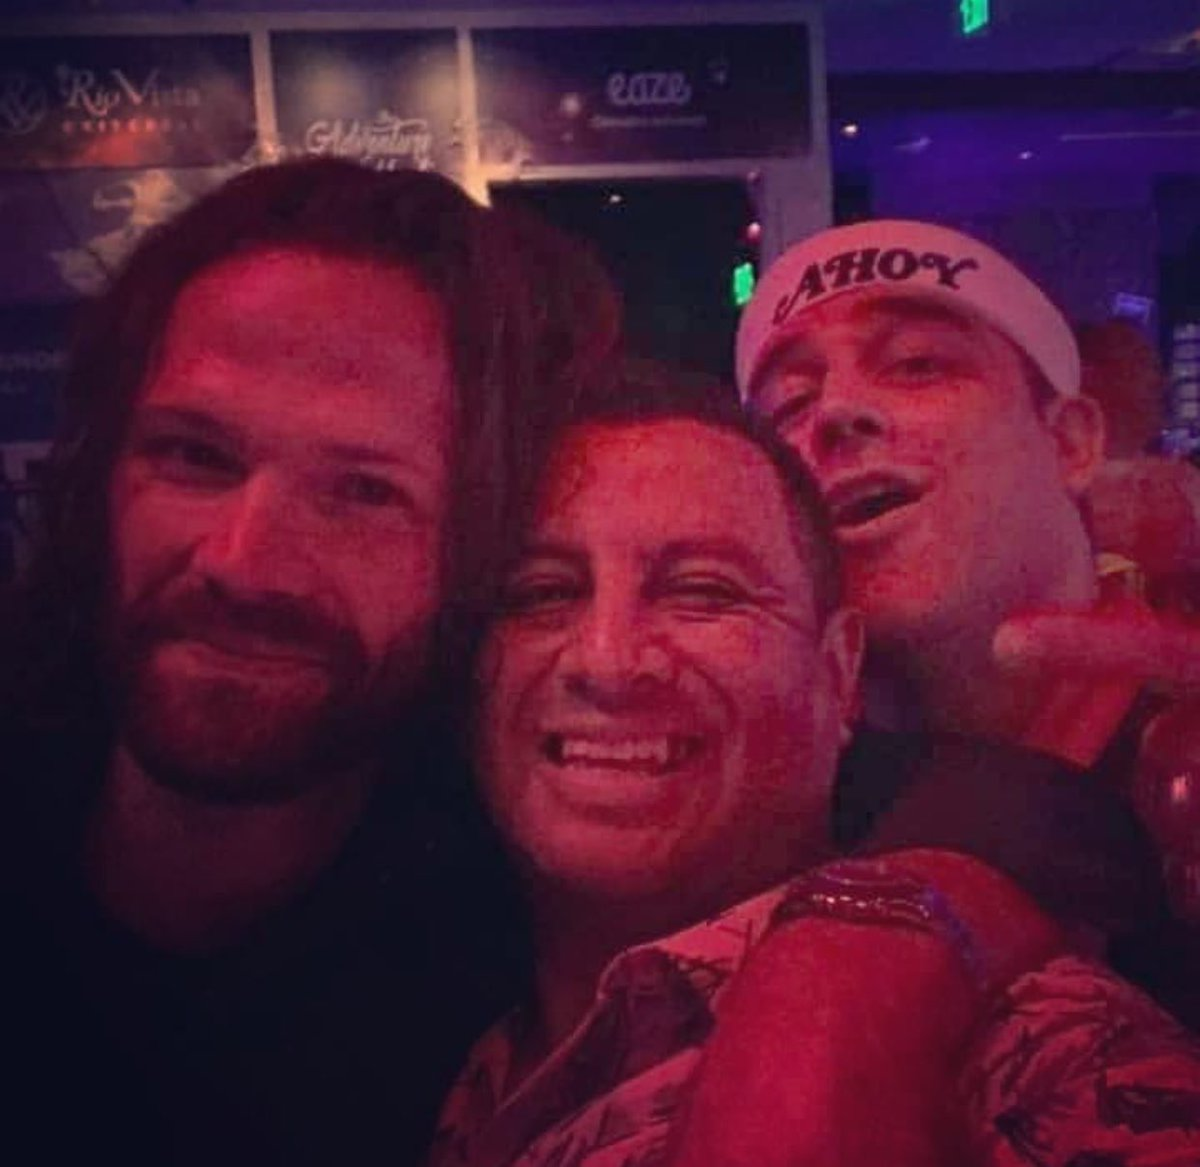 #newold—Jared+dudes—sdcc  https://www. instagram.com/p/B1ZvhcdAabX/ ?igshid=176y1gidwys77   … <br>http://pic.twitter.com/673qfyQ1Ft